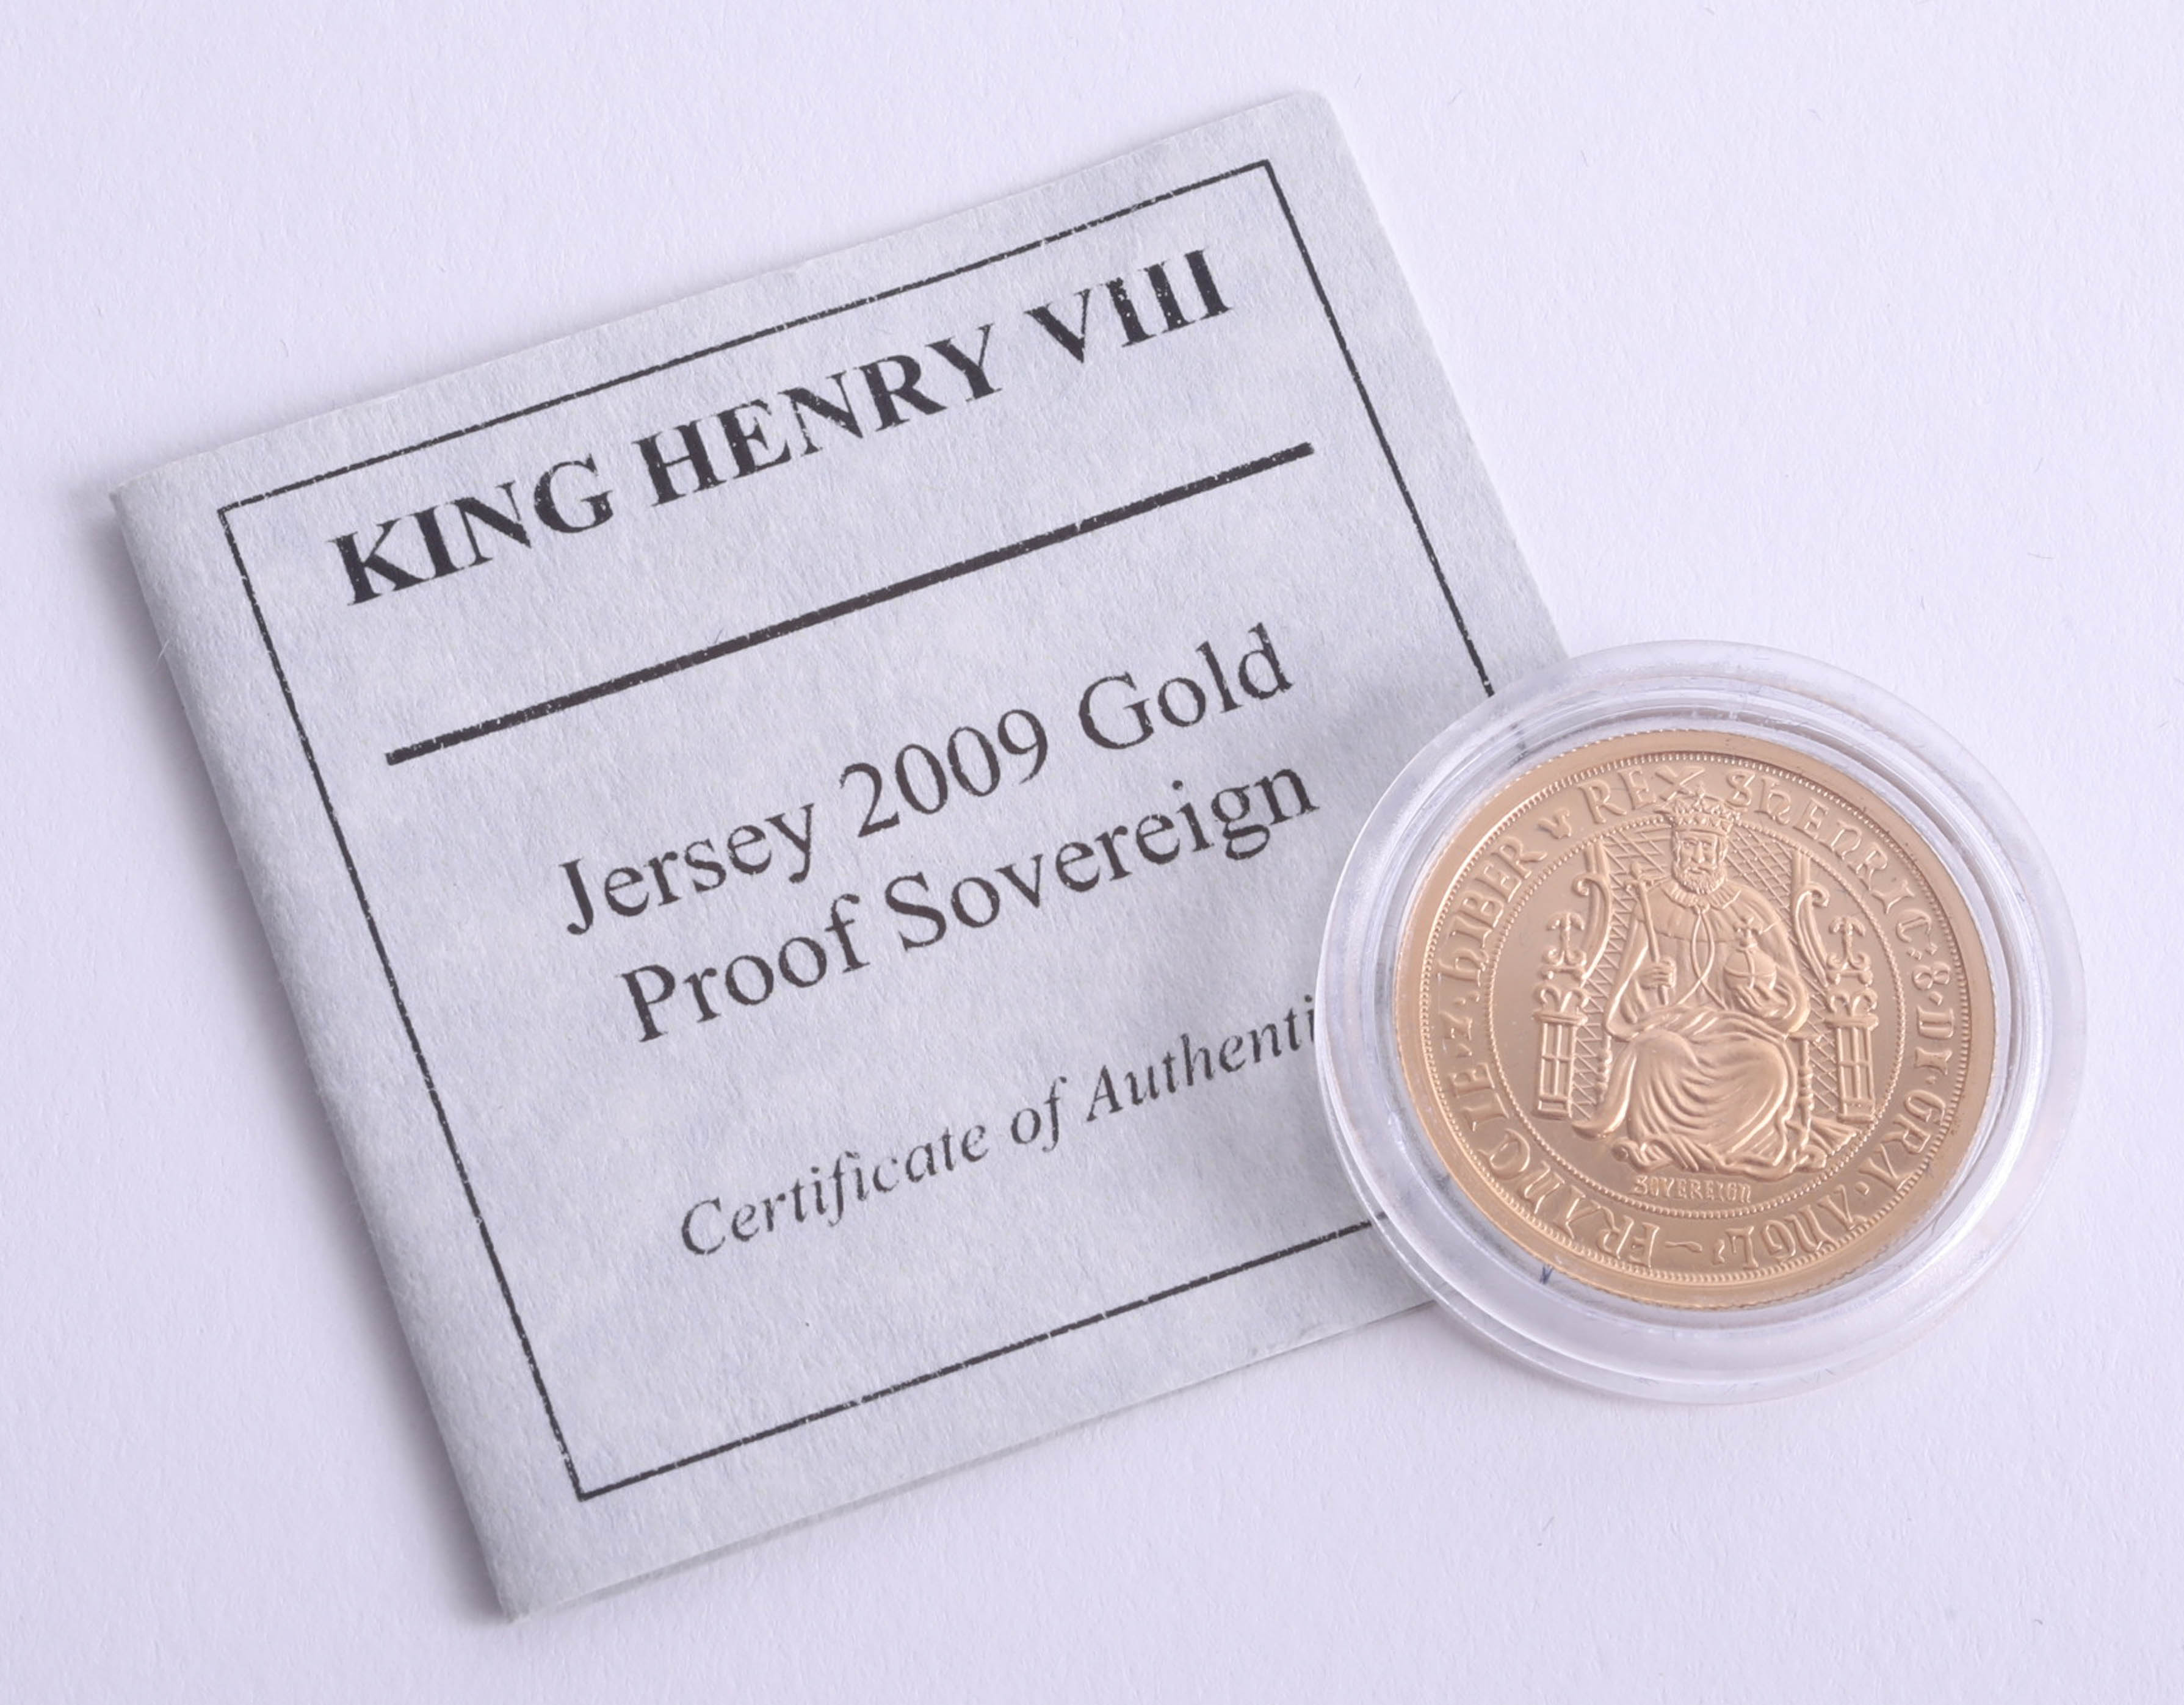 Lot 026 - Westminster Mint, Jersey 2009 gold proof sovereign, King Henry VIII, boxed with certificate.